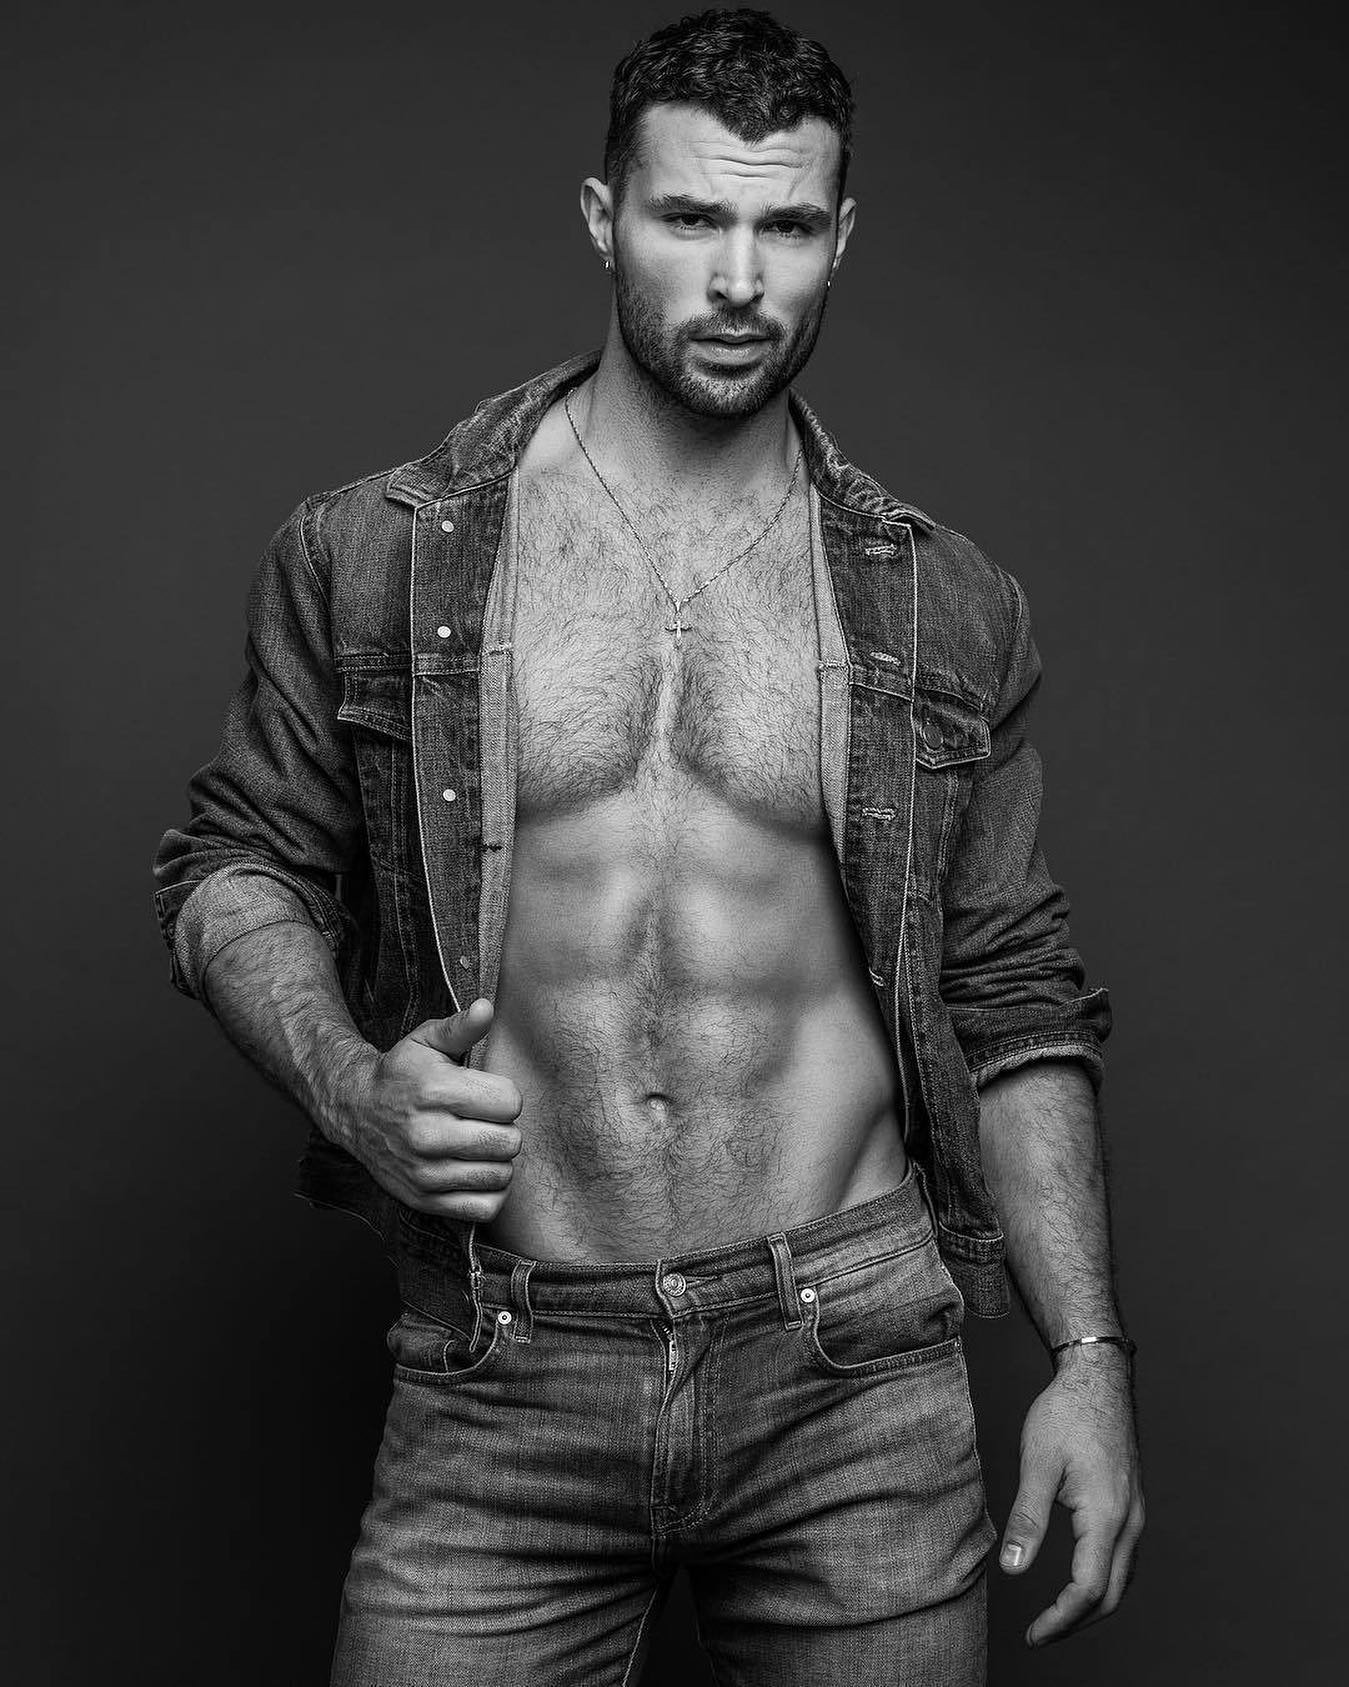 #men #abs #jeans #vline #hotmen #hunks #blackandwhite #muscle #hotmen